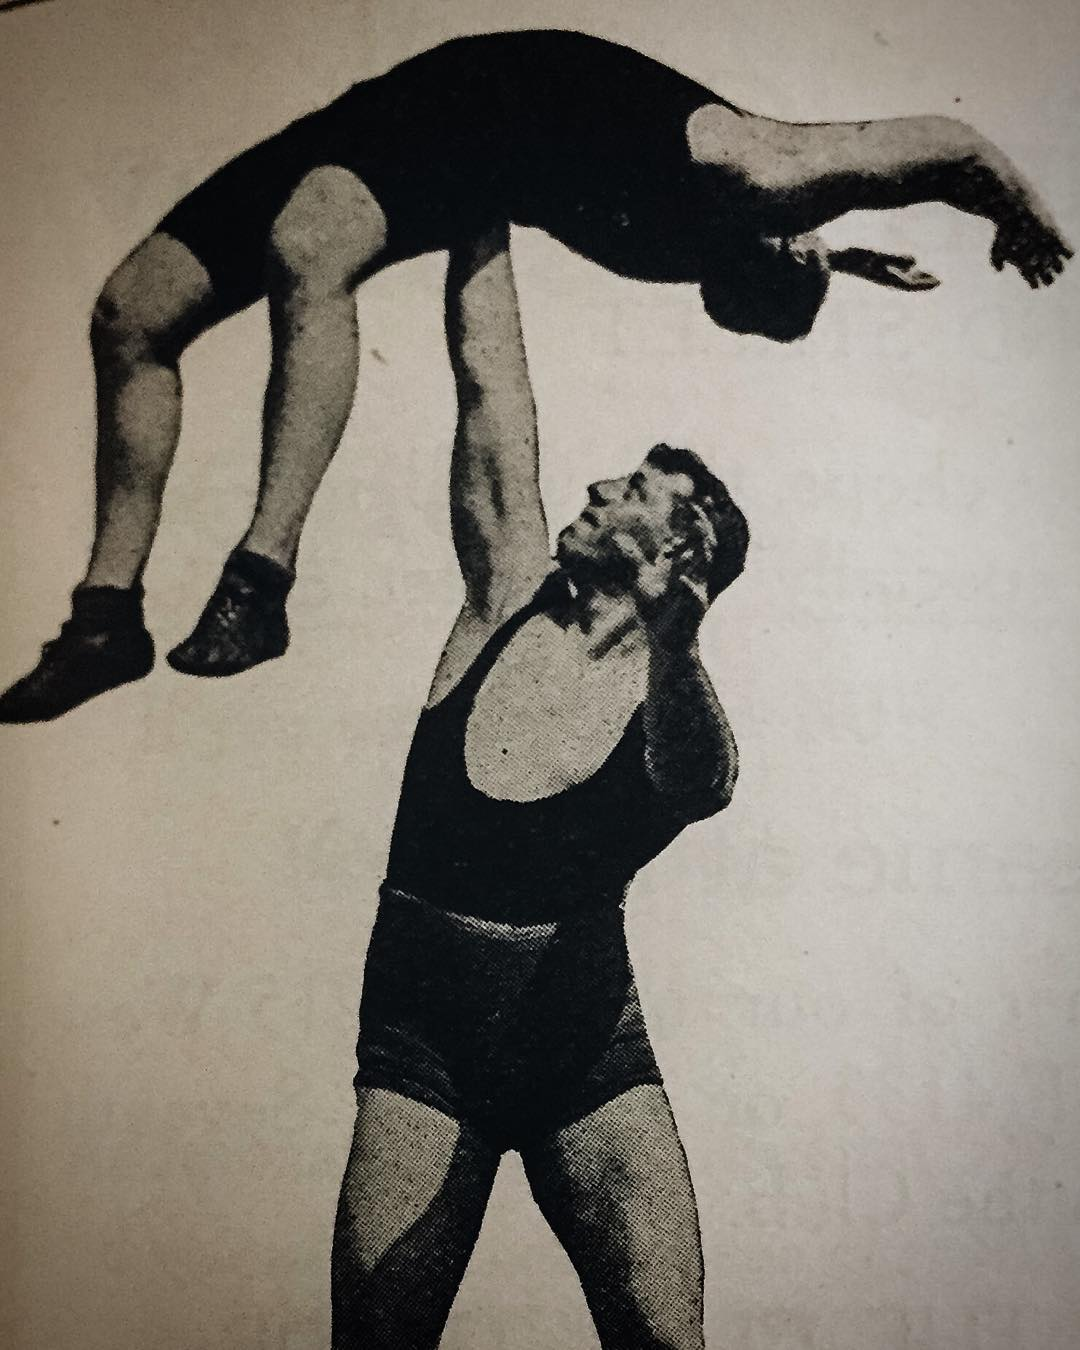 old wrestling picture at laac